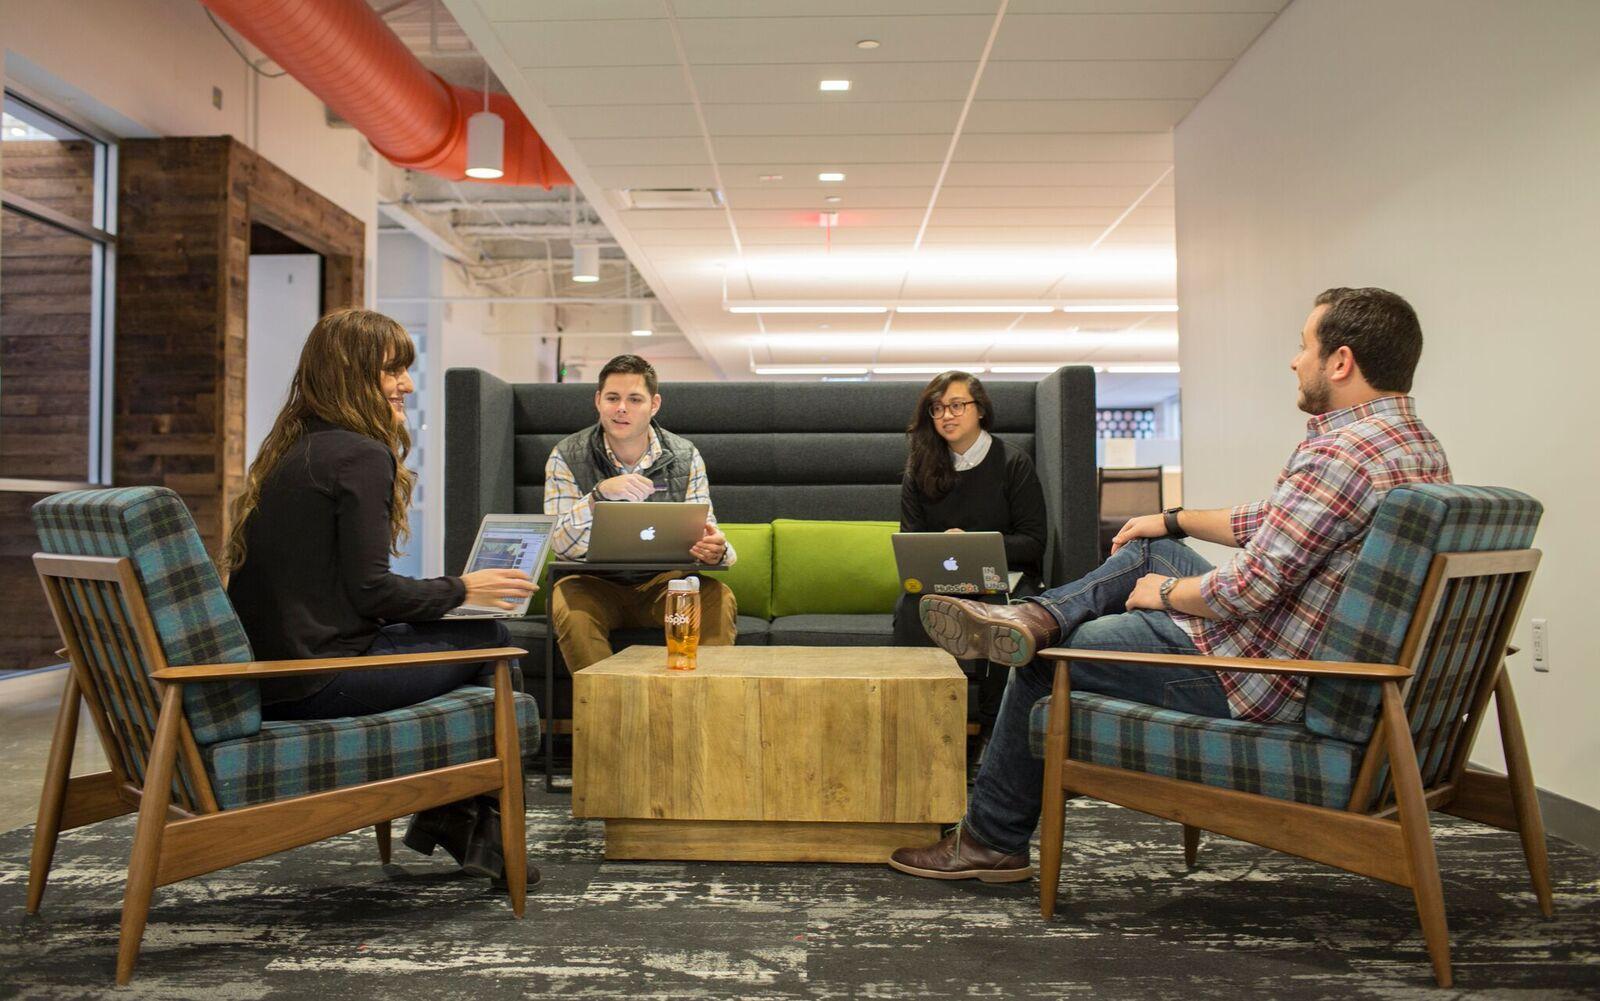 HubSpot Named The #2 Best Workplace in Technology by Fortune, Great Place to Work